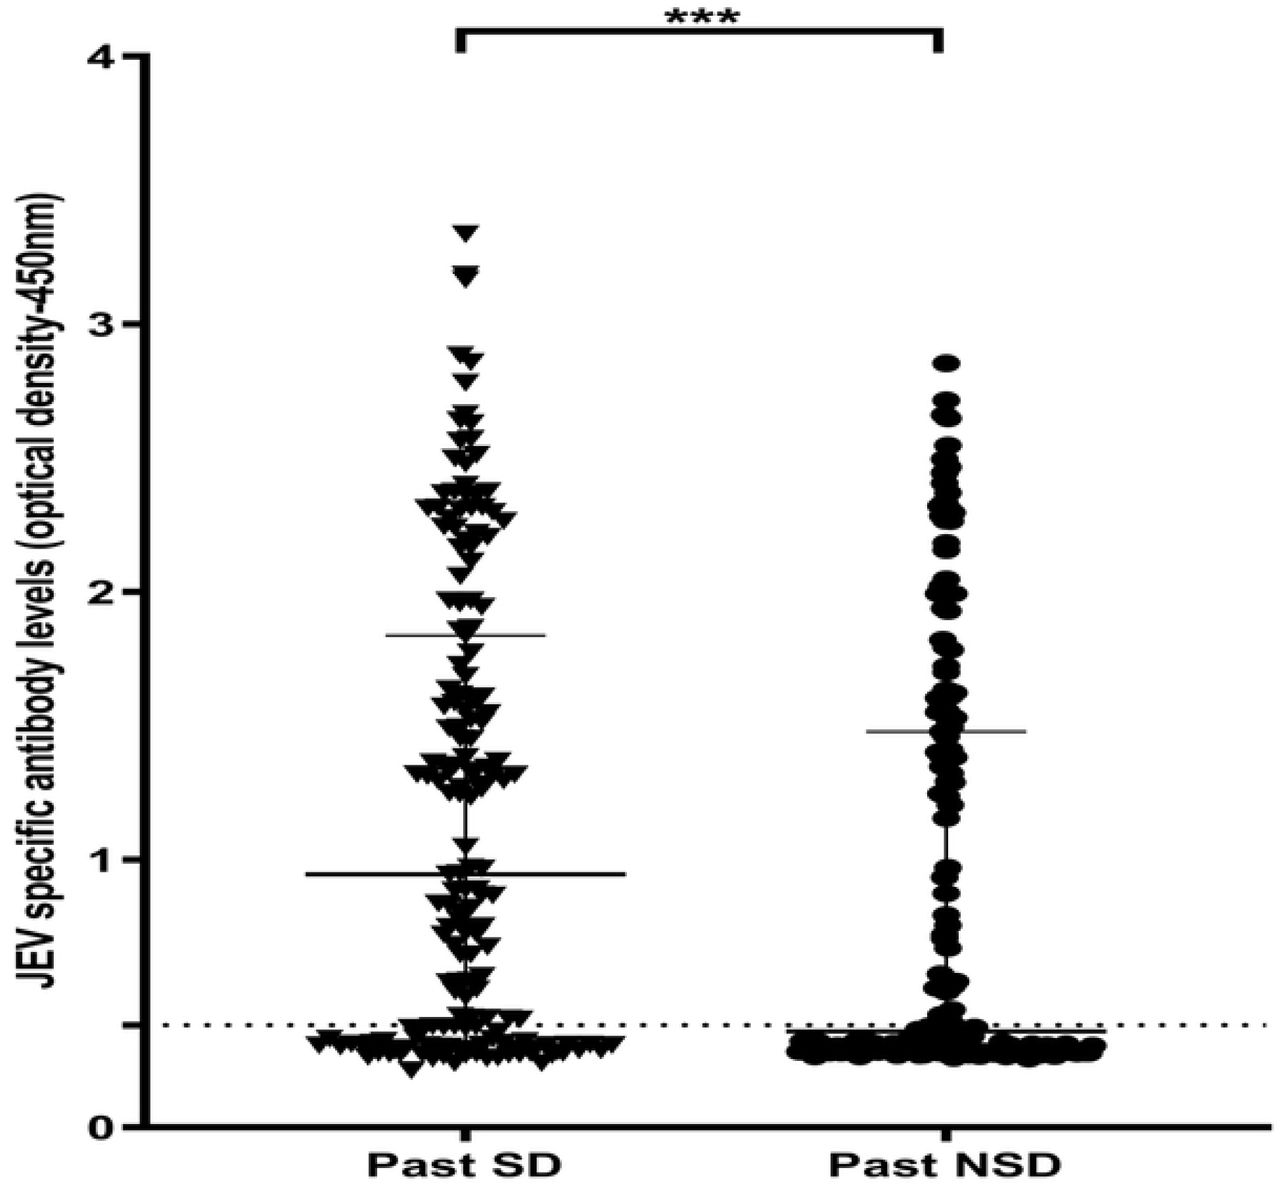 Antibody levels to <t>JEV-specific</t> pool of peptides in individuals who have had past NSD and SD. JEV-specific antibody responses were measured by <t>ELISA</t> to the JEV pool of peptides in those who have had NSD (n=175) and SD (n=175). Error bars indicate the median and the interquartile range. The horizontal dotted line represents the cut-off value of 0.382, which was considered as the mean, ±3SD of the optical density of antibody levels in JEV - and DENV - seronegative individuals.